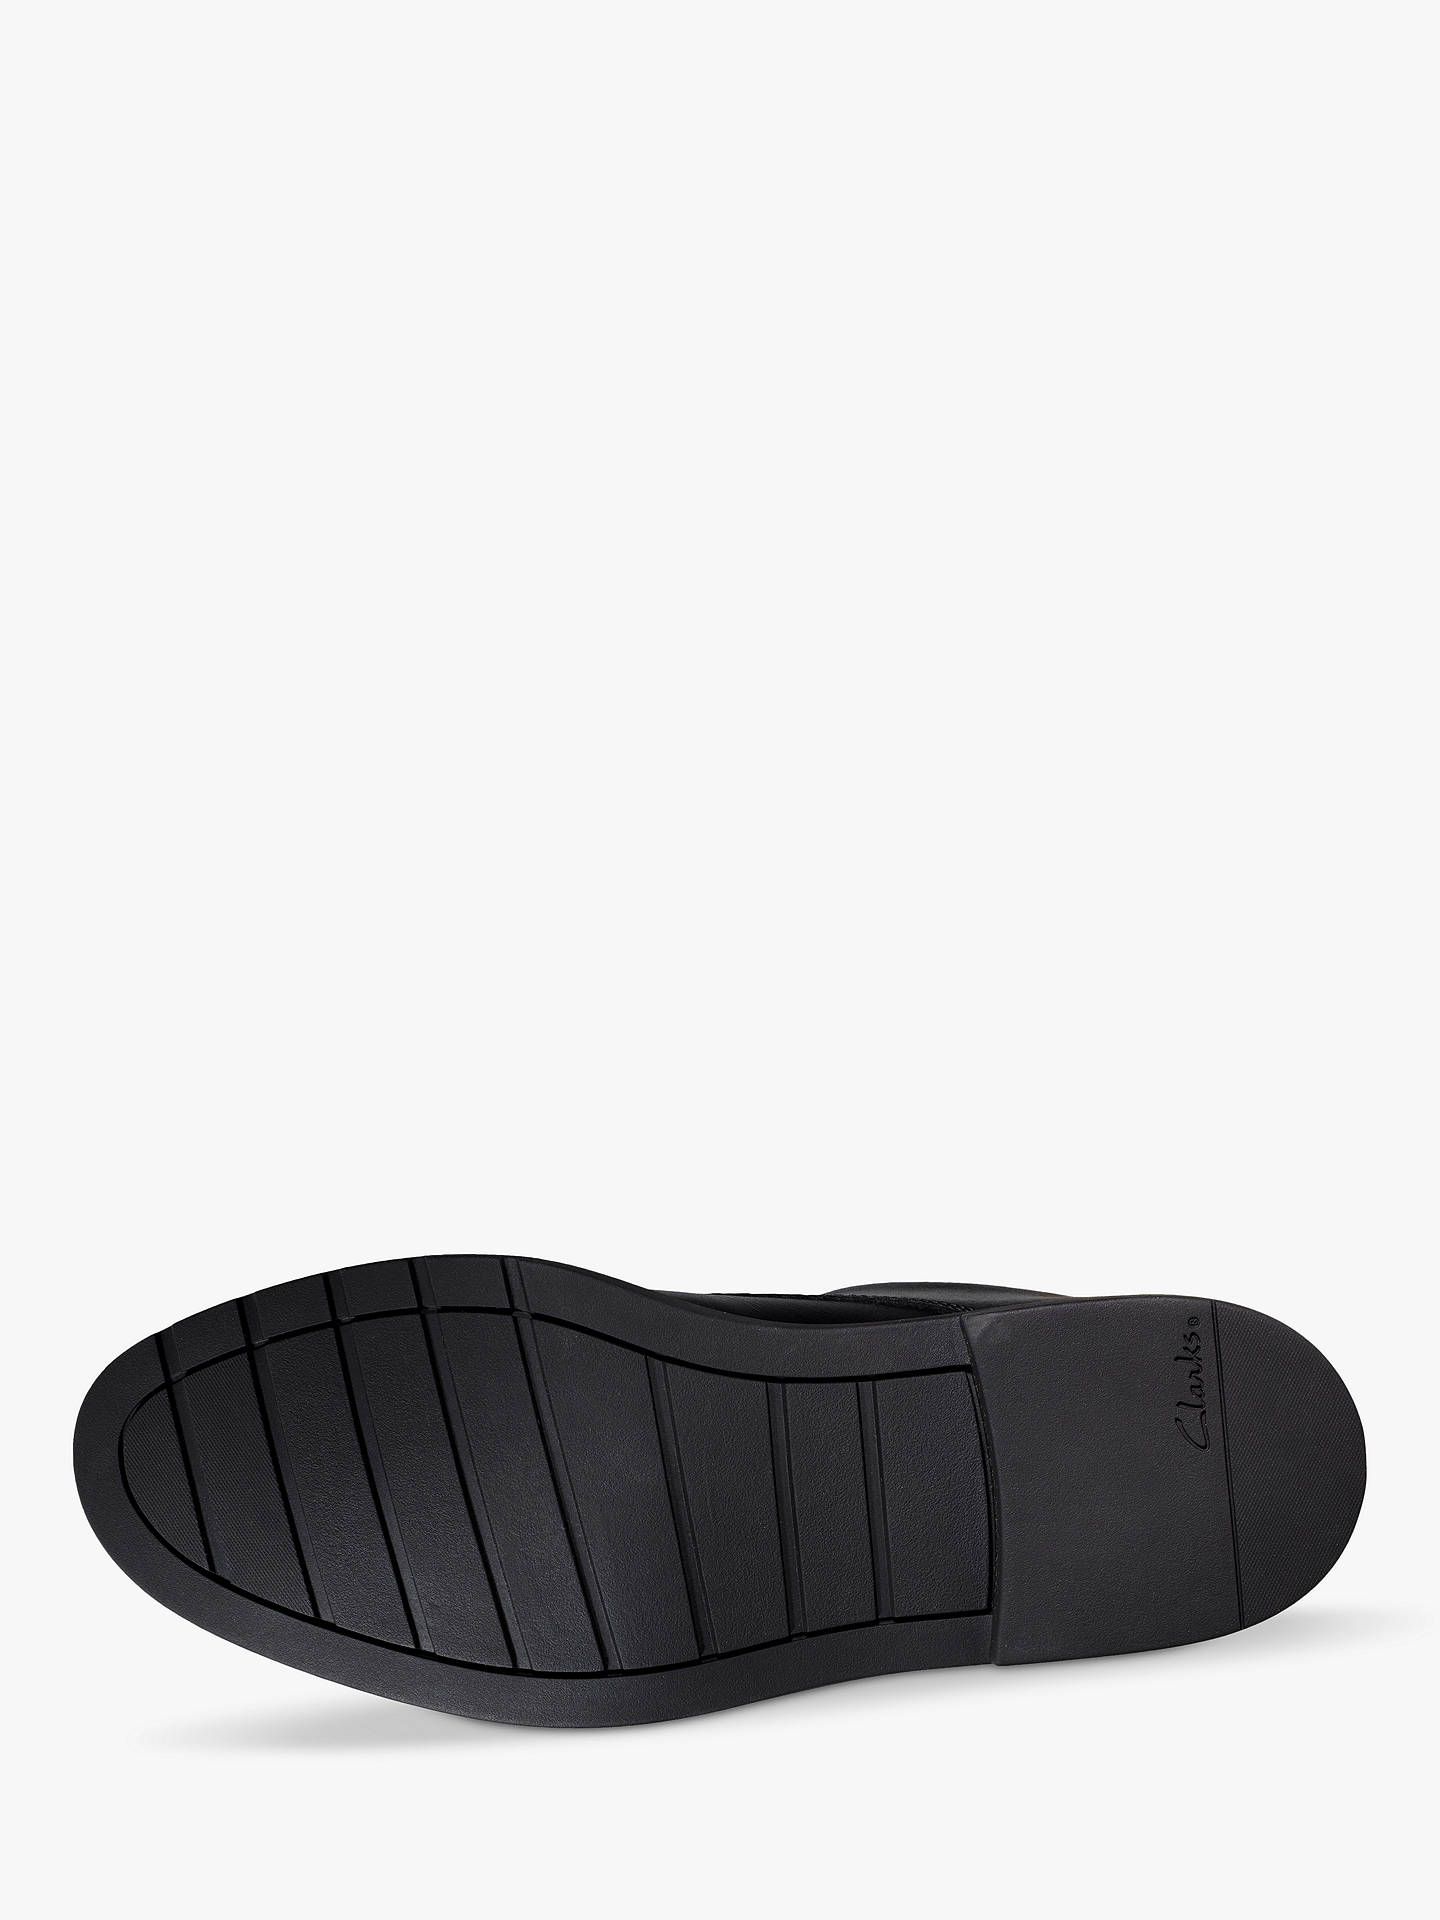 Buy Clarks Children's Scala Loop Youth Shoes, Black, 3.5G Online at johnlewis.com